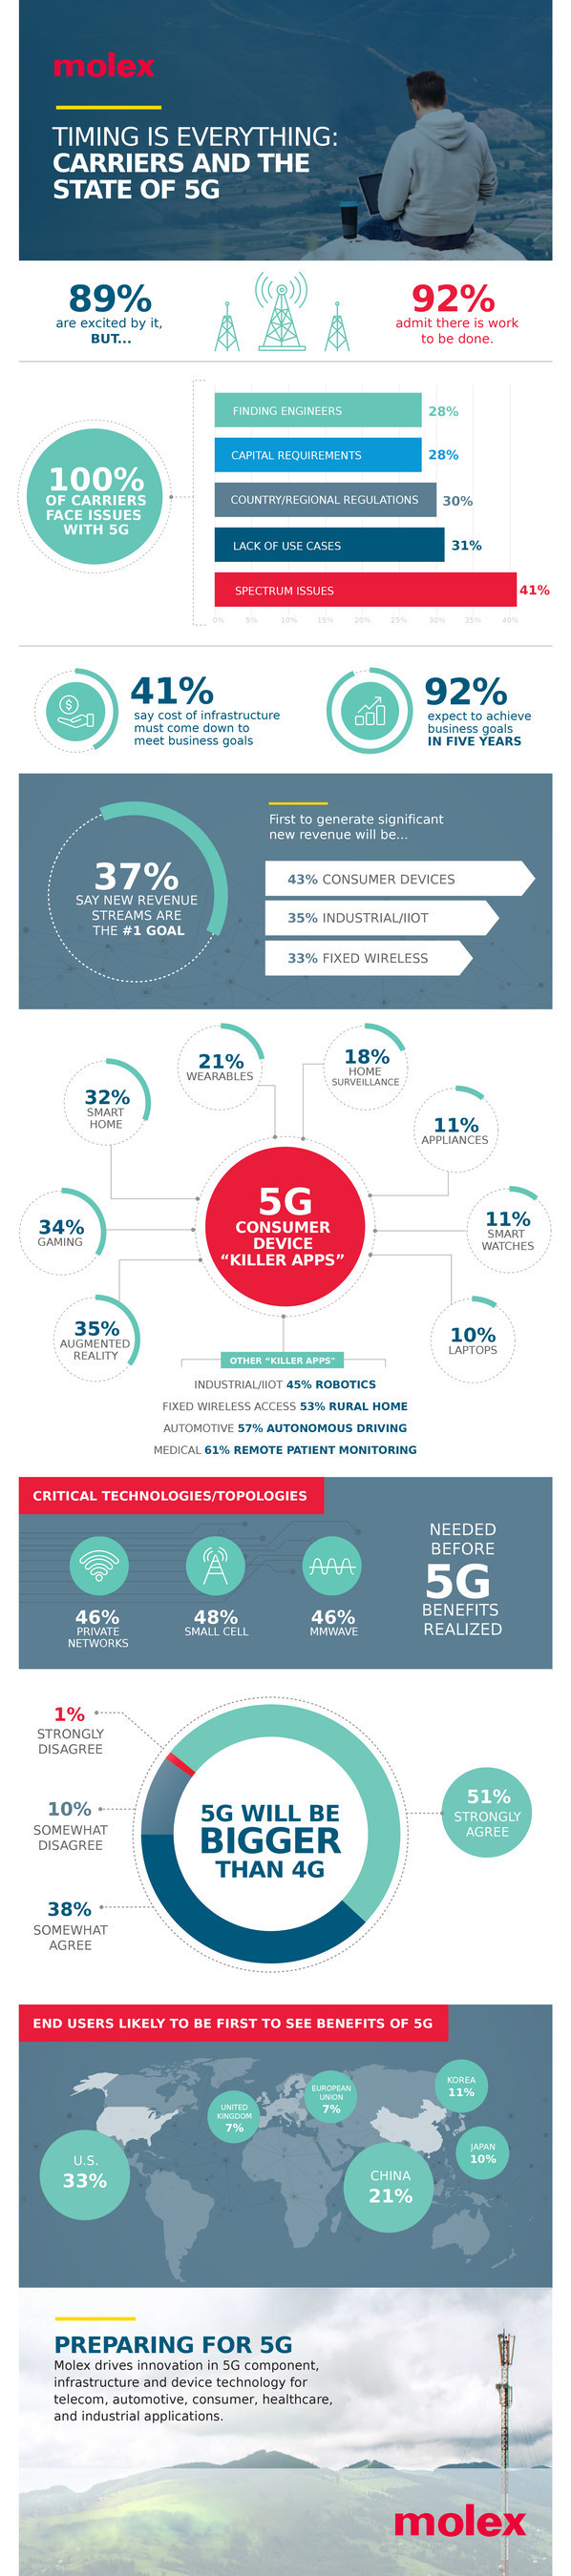 Molex Survey Provides Carrier Insights into the State of 5G